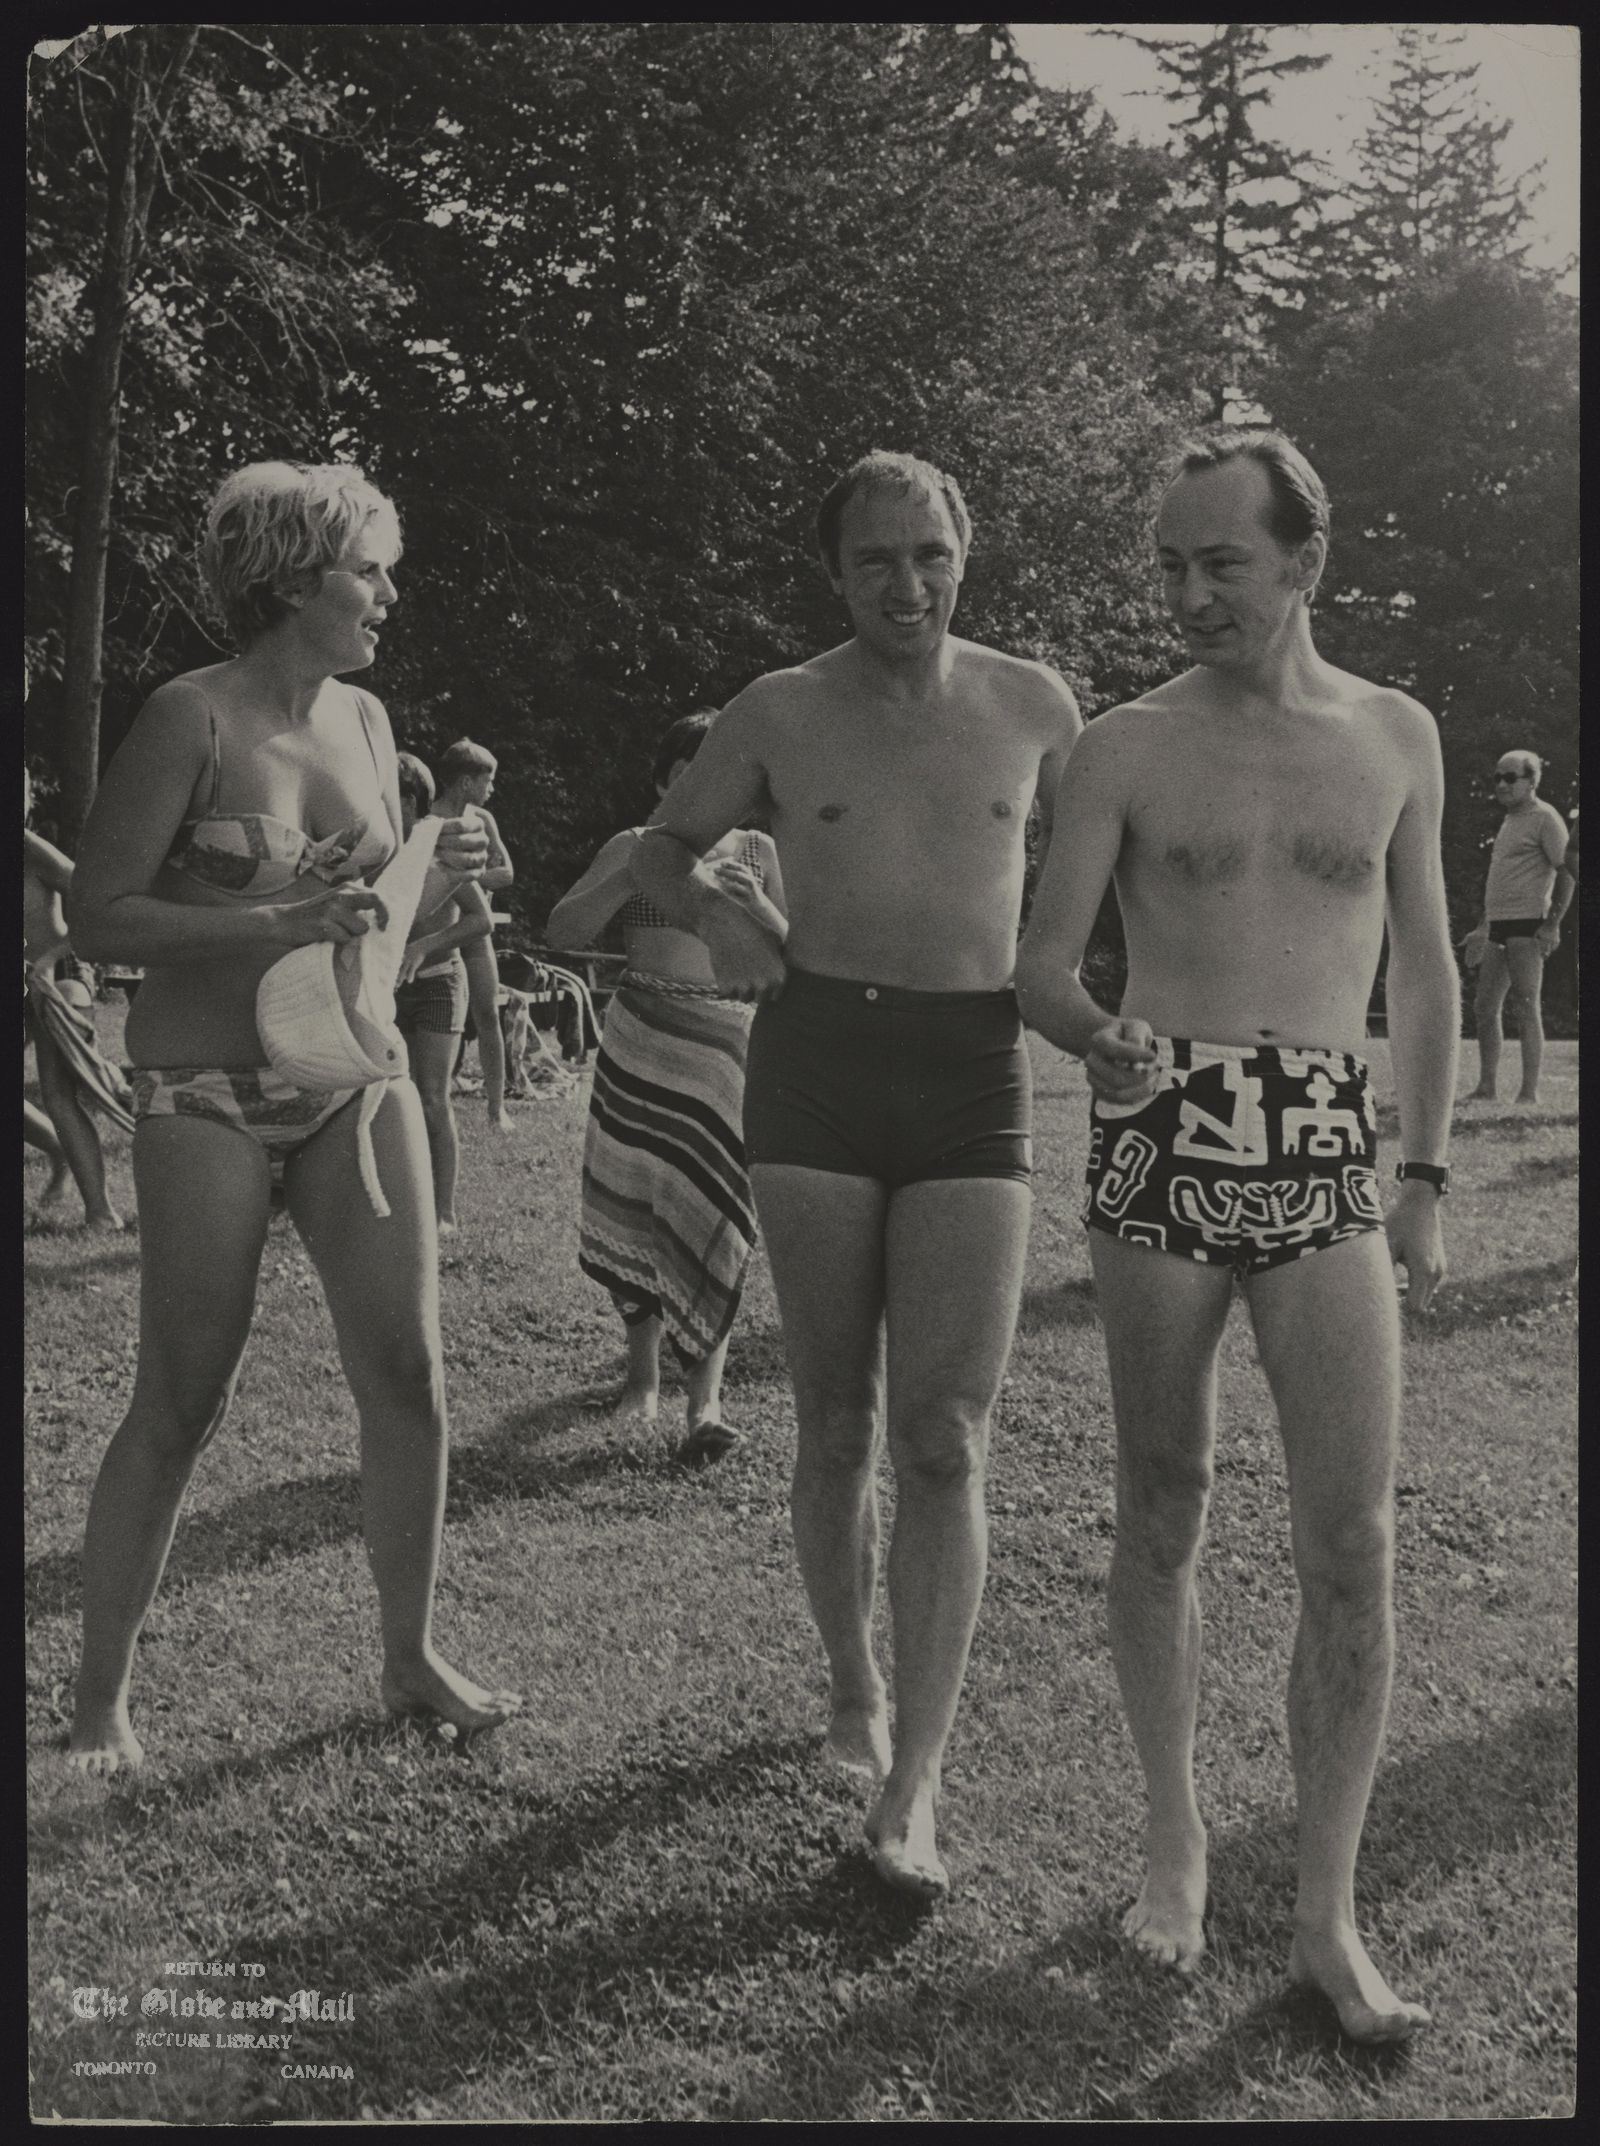 Pierre Elliott TRUDEAU Quebec. Politician (misc) Prime Minister Pierre Trudeau, centre, with Mr. and Mrs. James Domville after having swim in Stratford, Ontario.